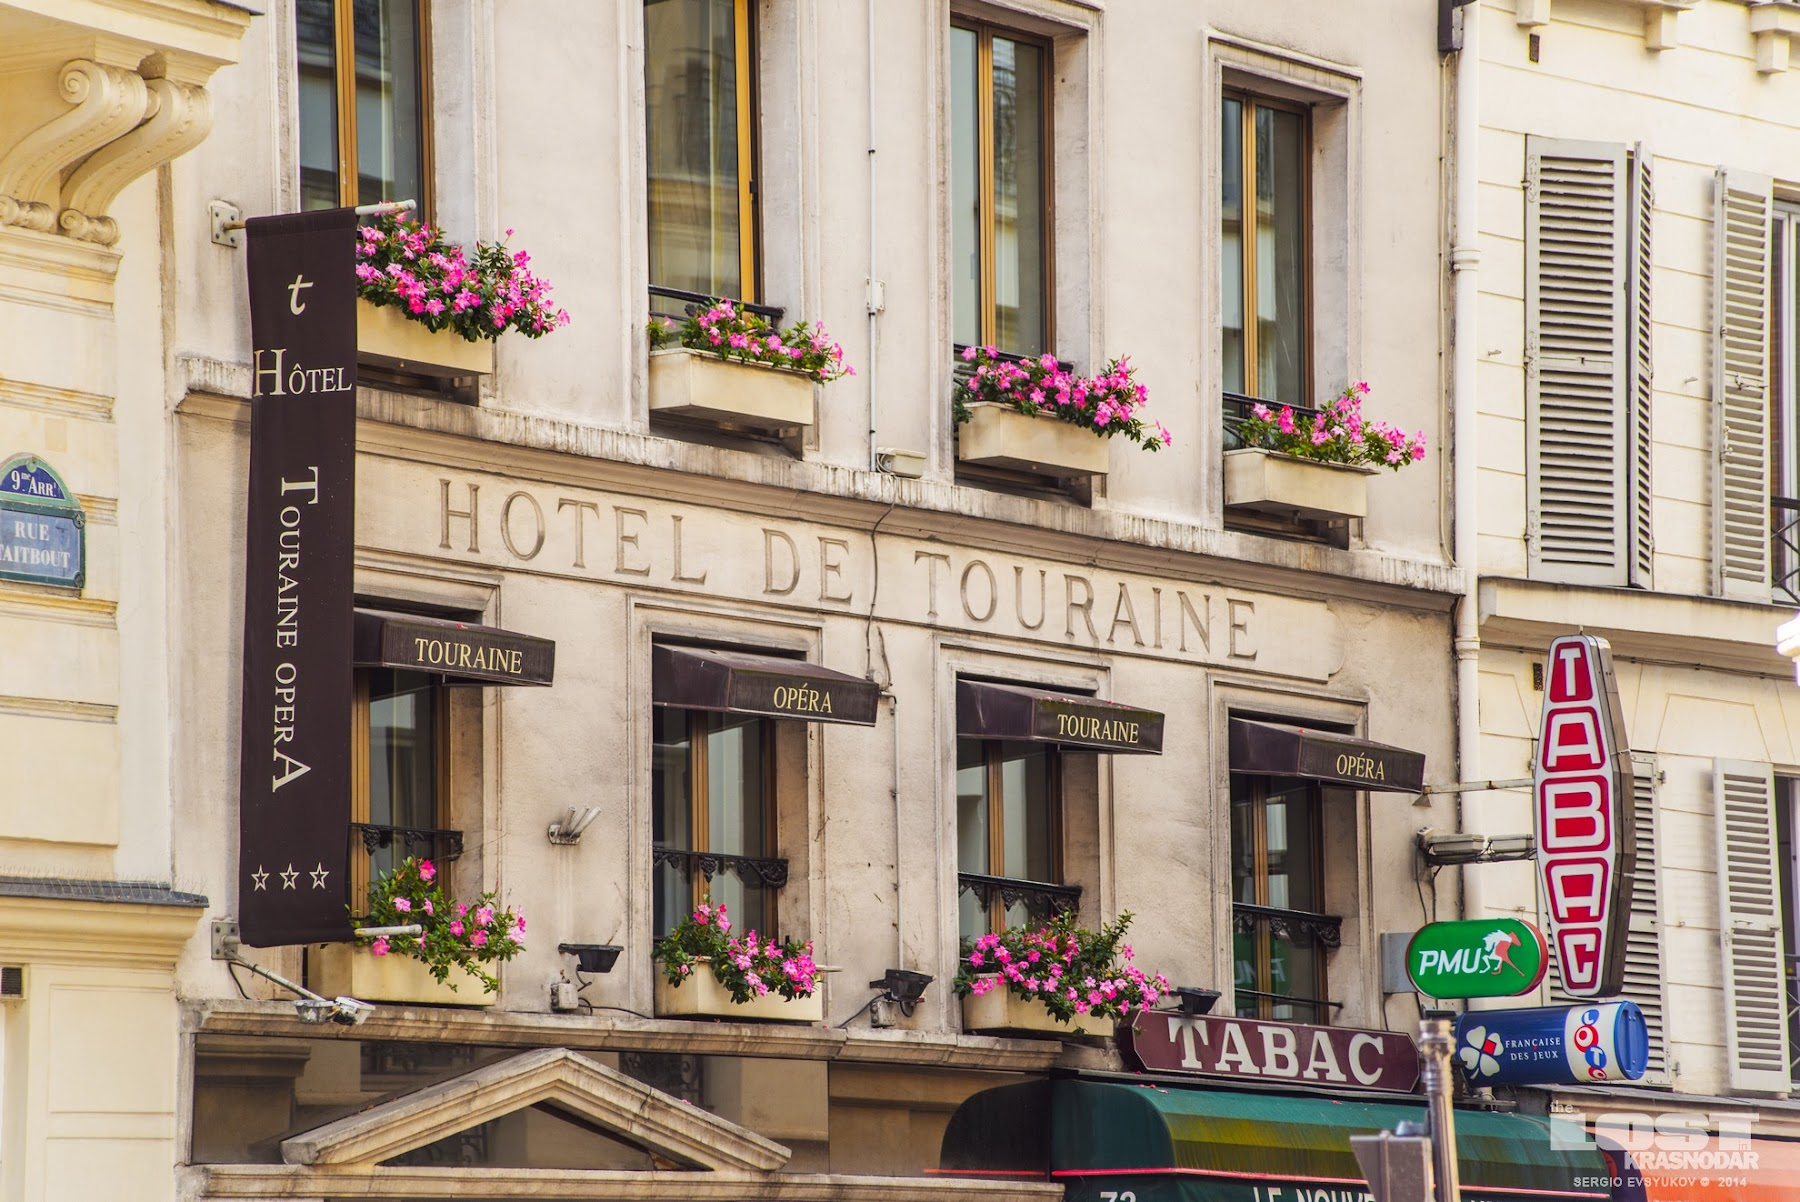 Flowers on facades of Paris buildings